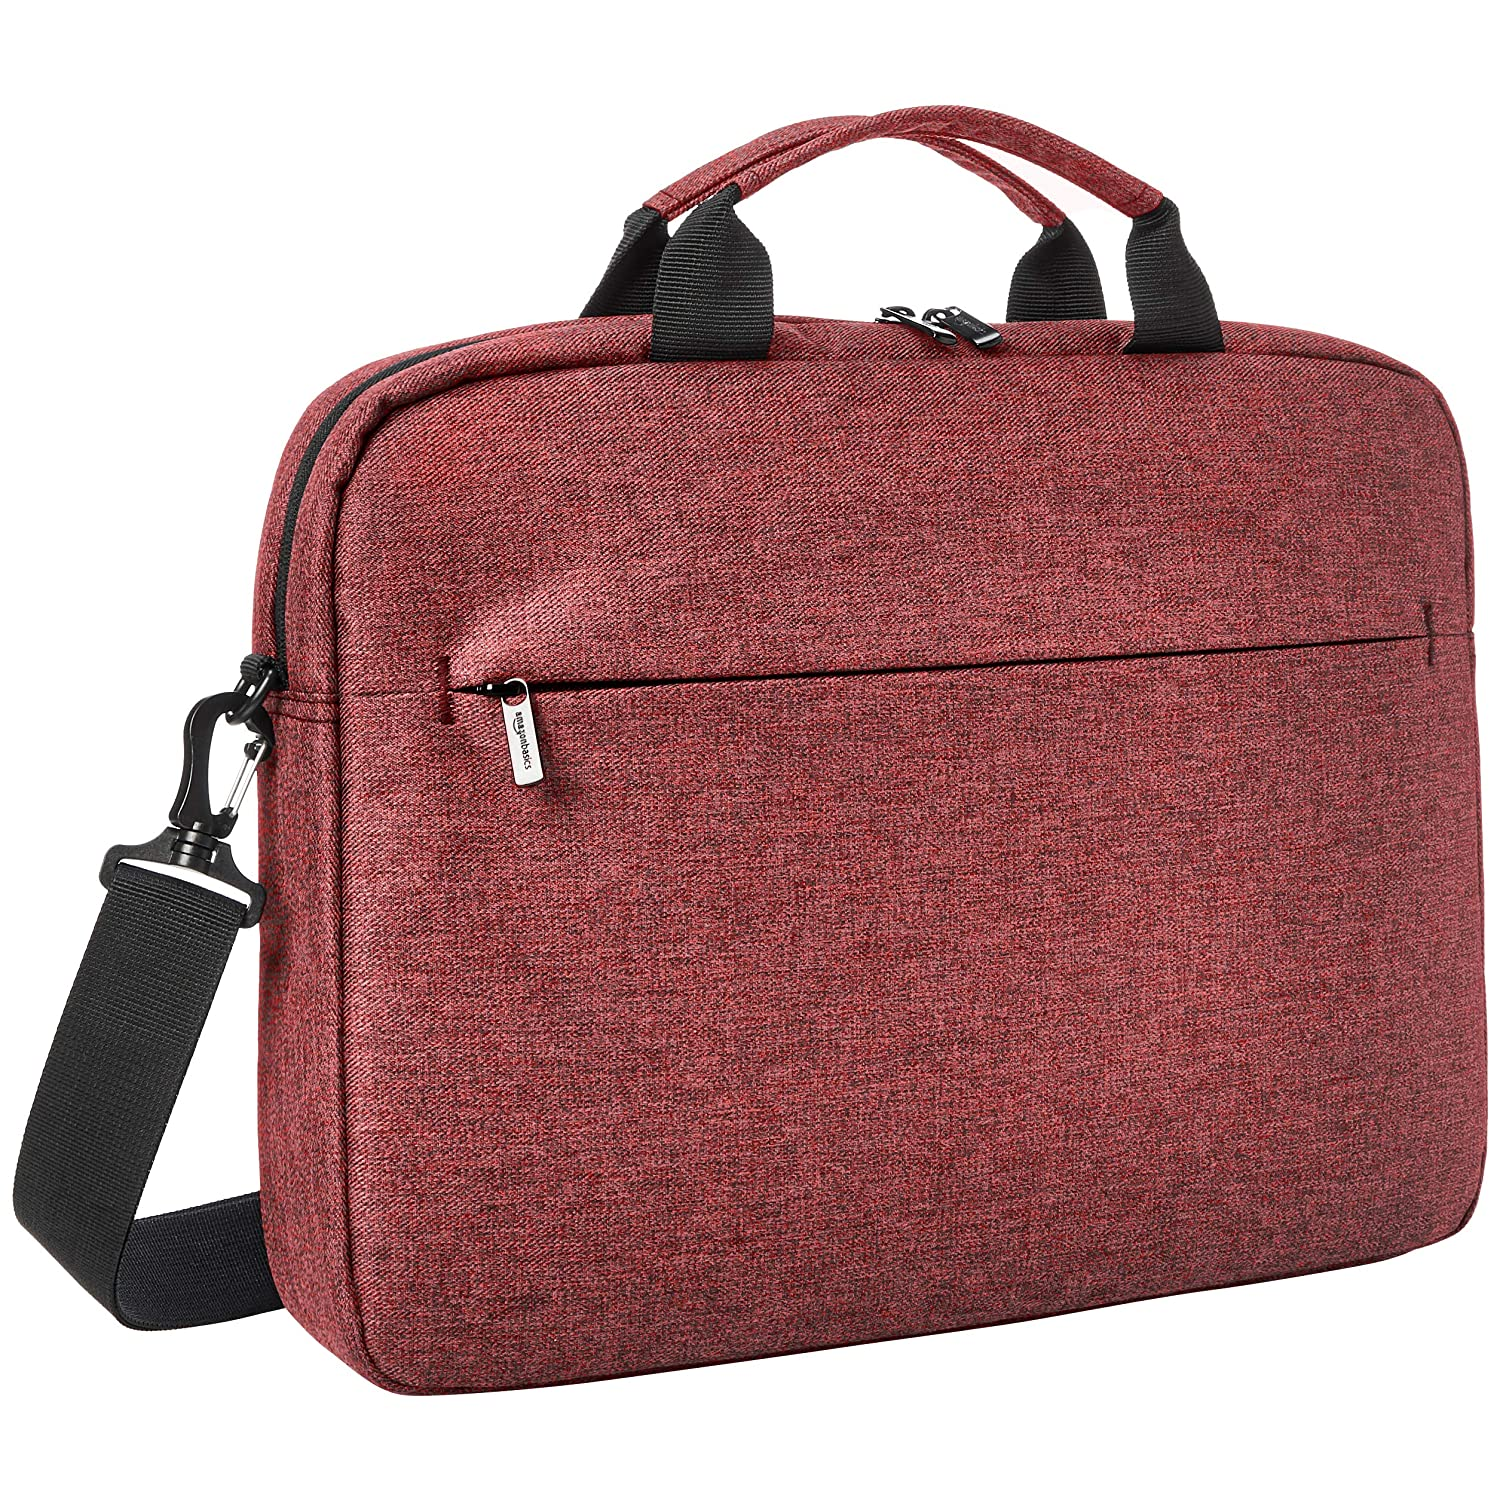 "AmazonBasics Urban Laptop and Tablet Case, 17"", Maroon"